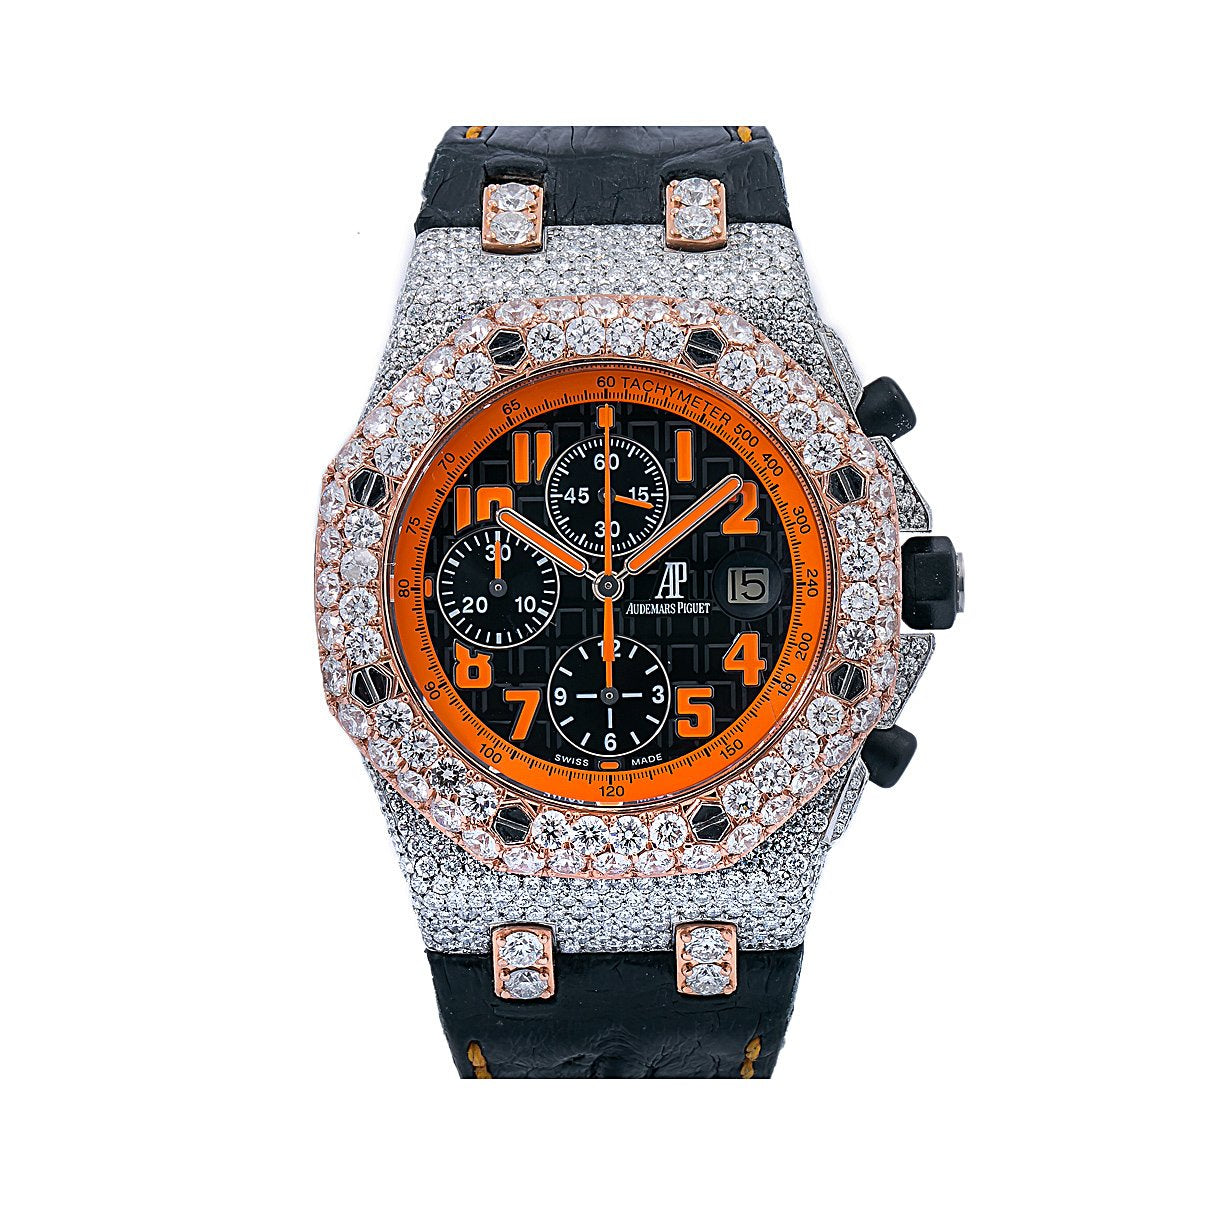 Audemars Piguet Royal Oak Offshore Chronograph Volcano 26170ST 42MM Black Dial With Leather Bracelet